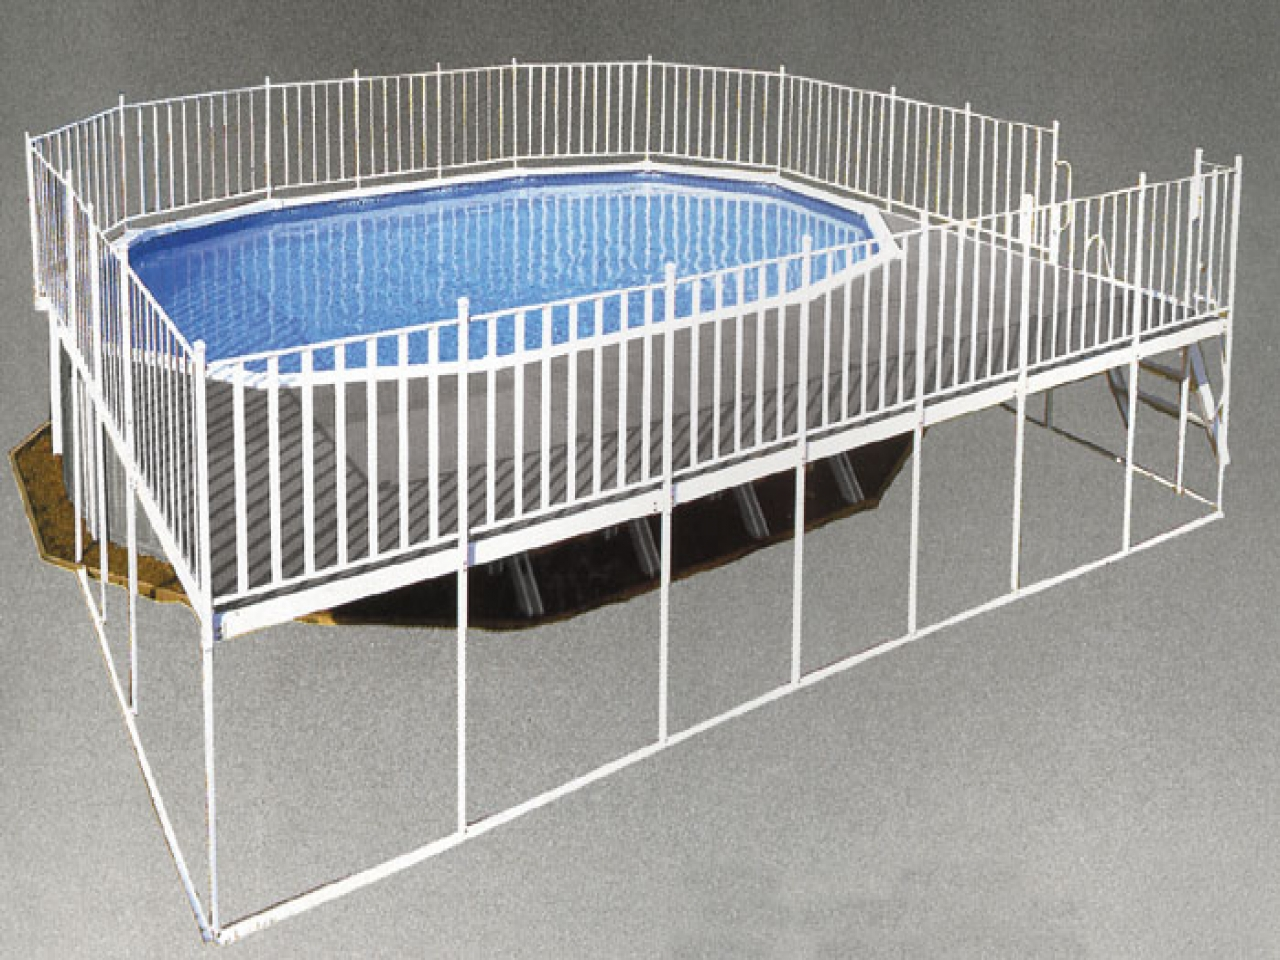 Image of: Aluminum Pool Deck Plans